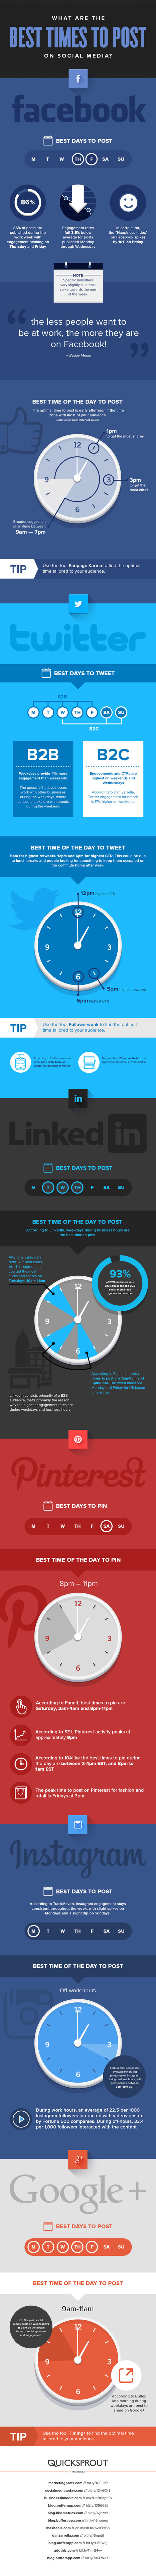 Las mejores horas para publicar en Redes Sociales #infografia #infographic #socialmedia | Seo, Social Media Marketing | Scoop.it